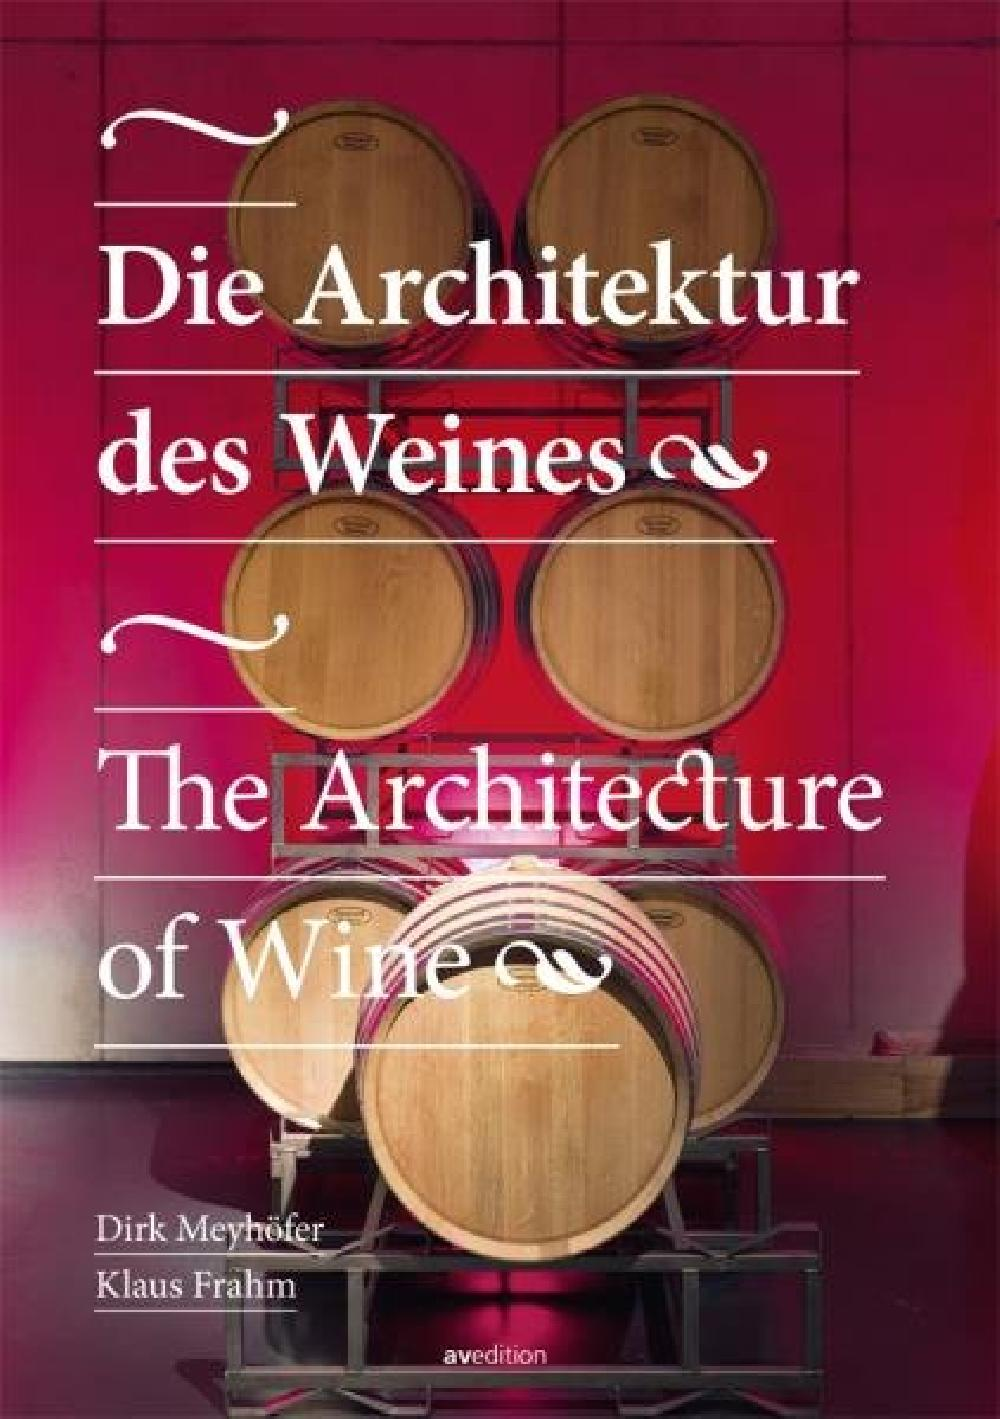 The architecture of wine